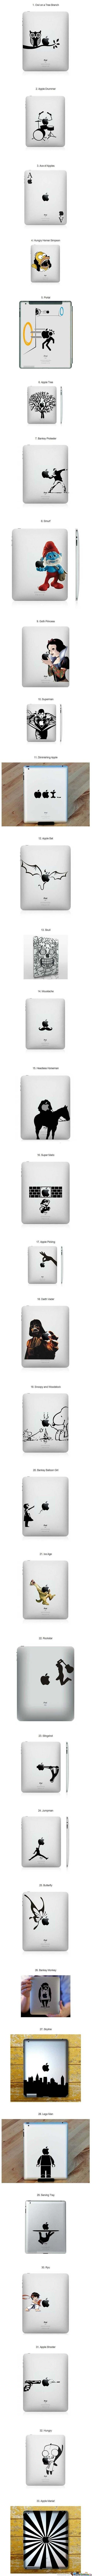 (Longlongpost)33 Awesome Decal Collection For Your Ipad